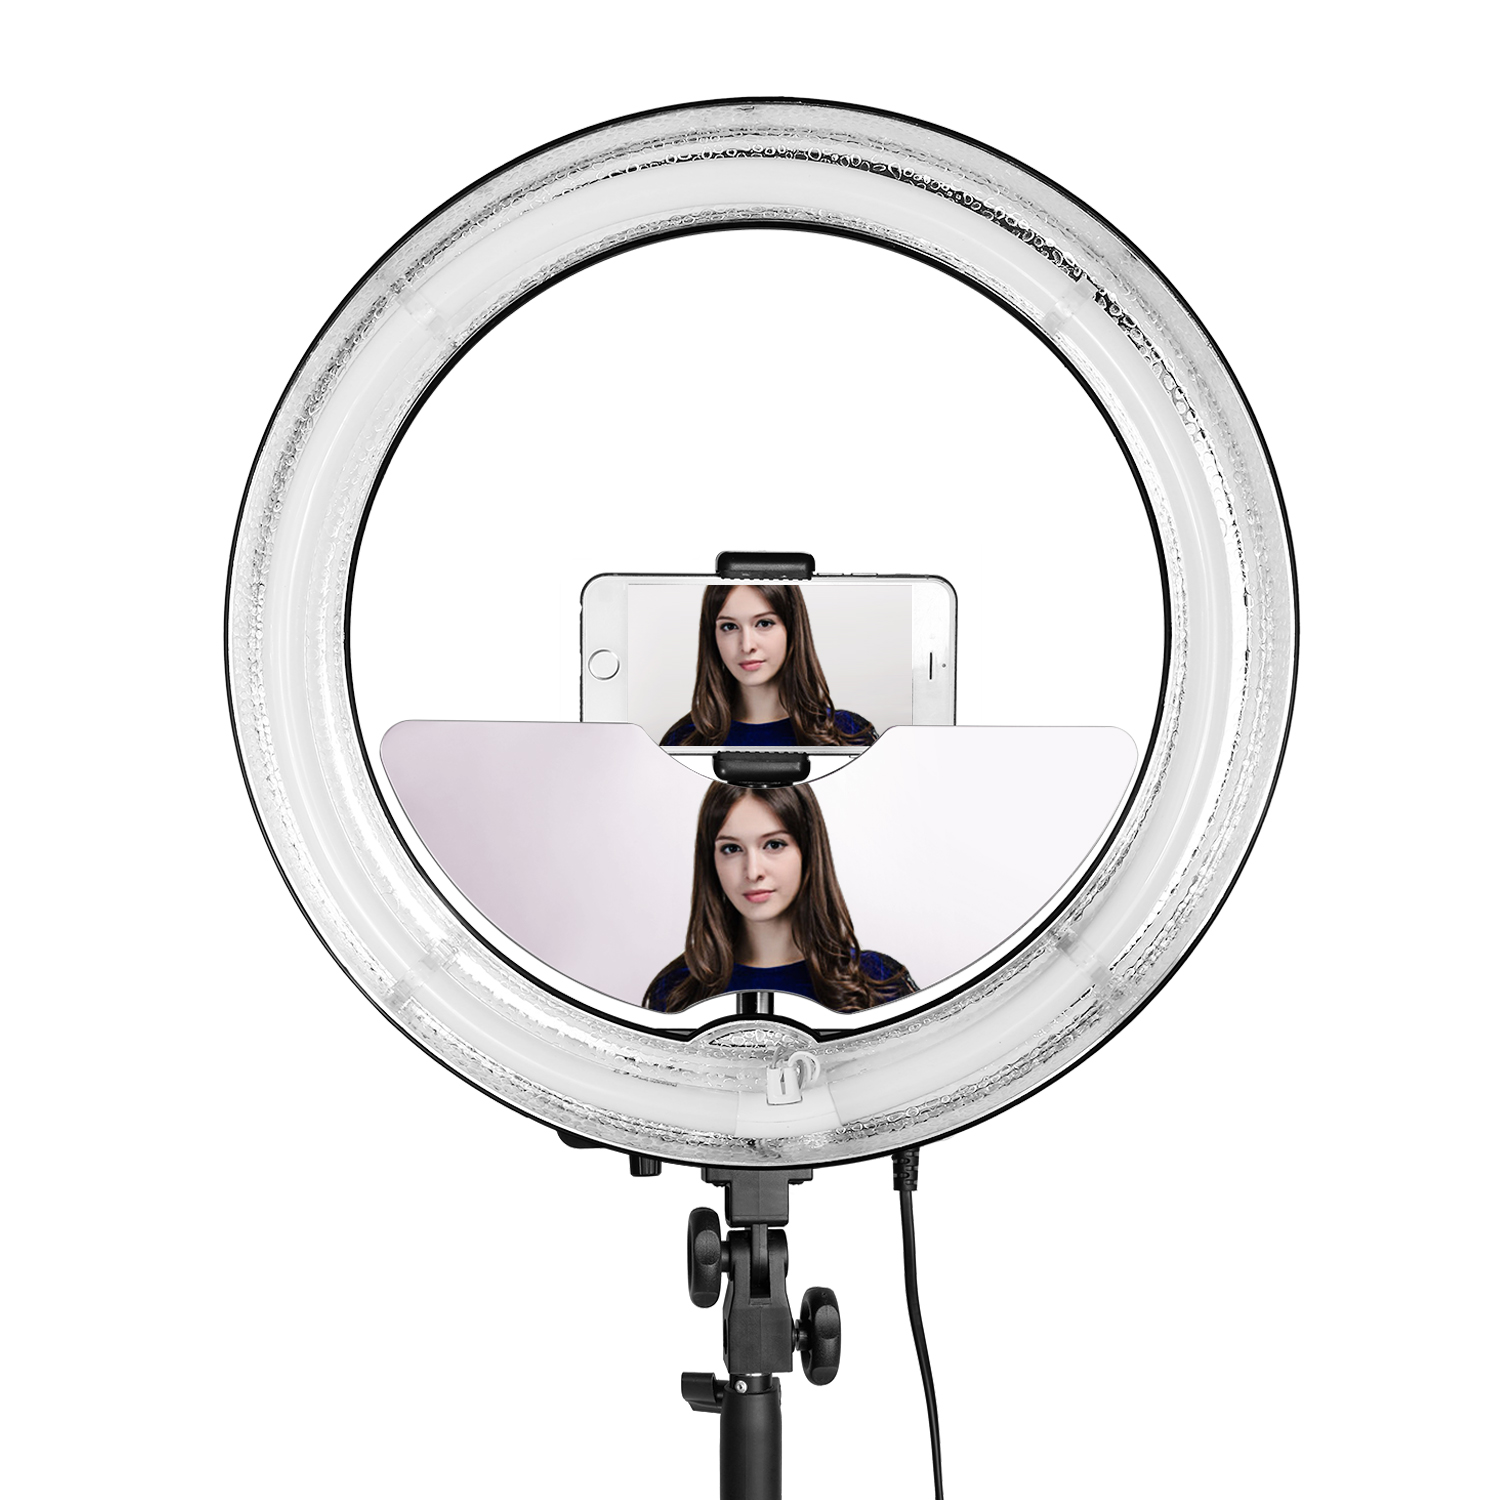 Neewer Ring Light Accessories Include Mirror, Smart Phone Holder And  Bluetooth Remote Control For Self Portrait And Makeup,patible With 18  Inches Ring